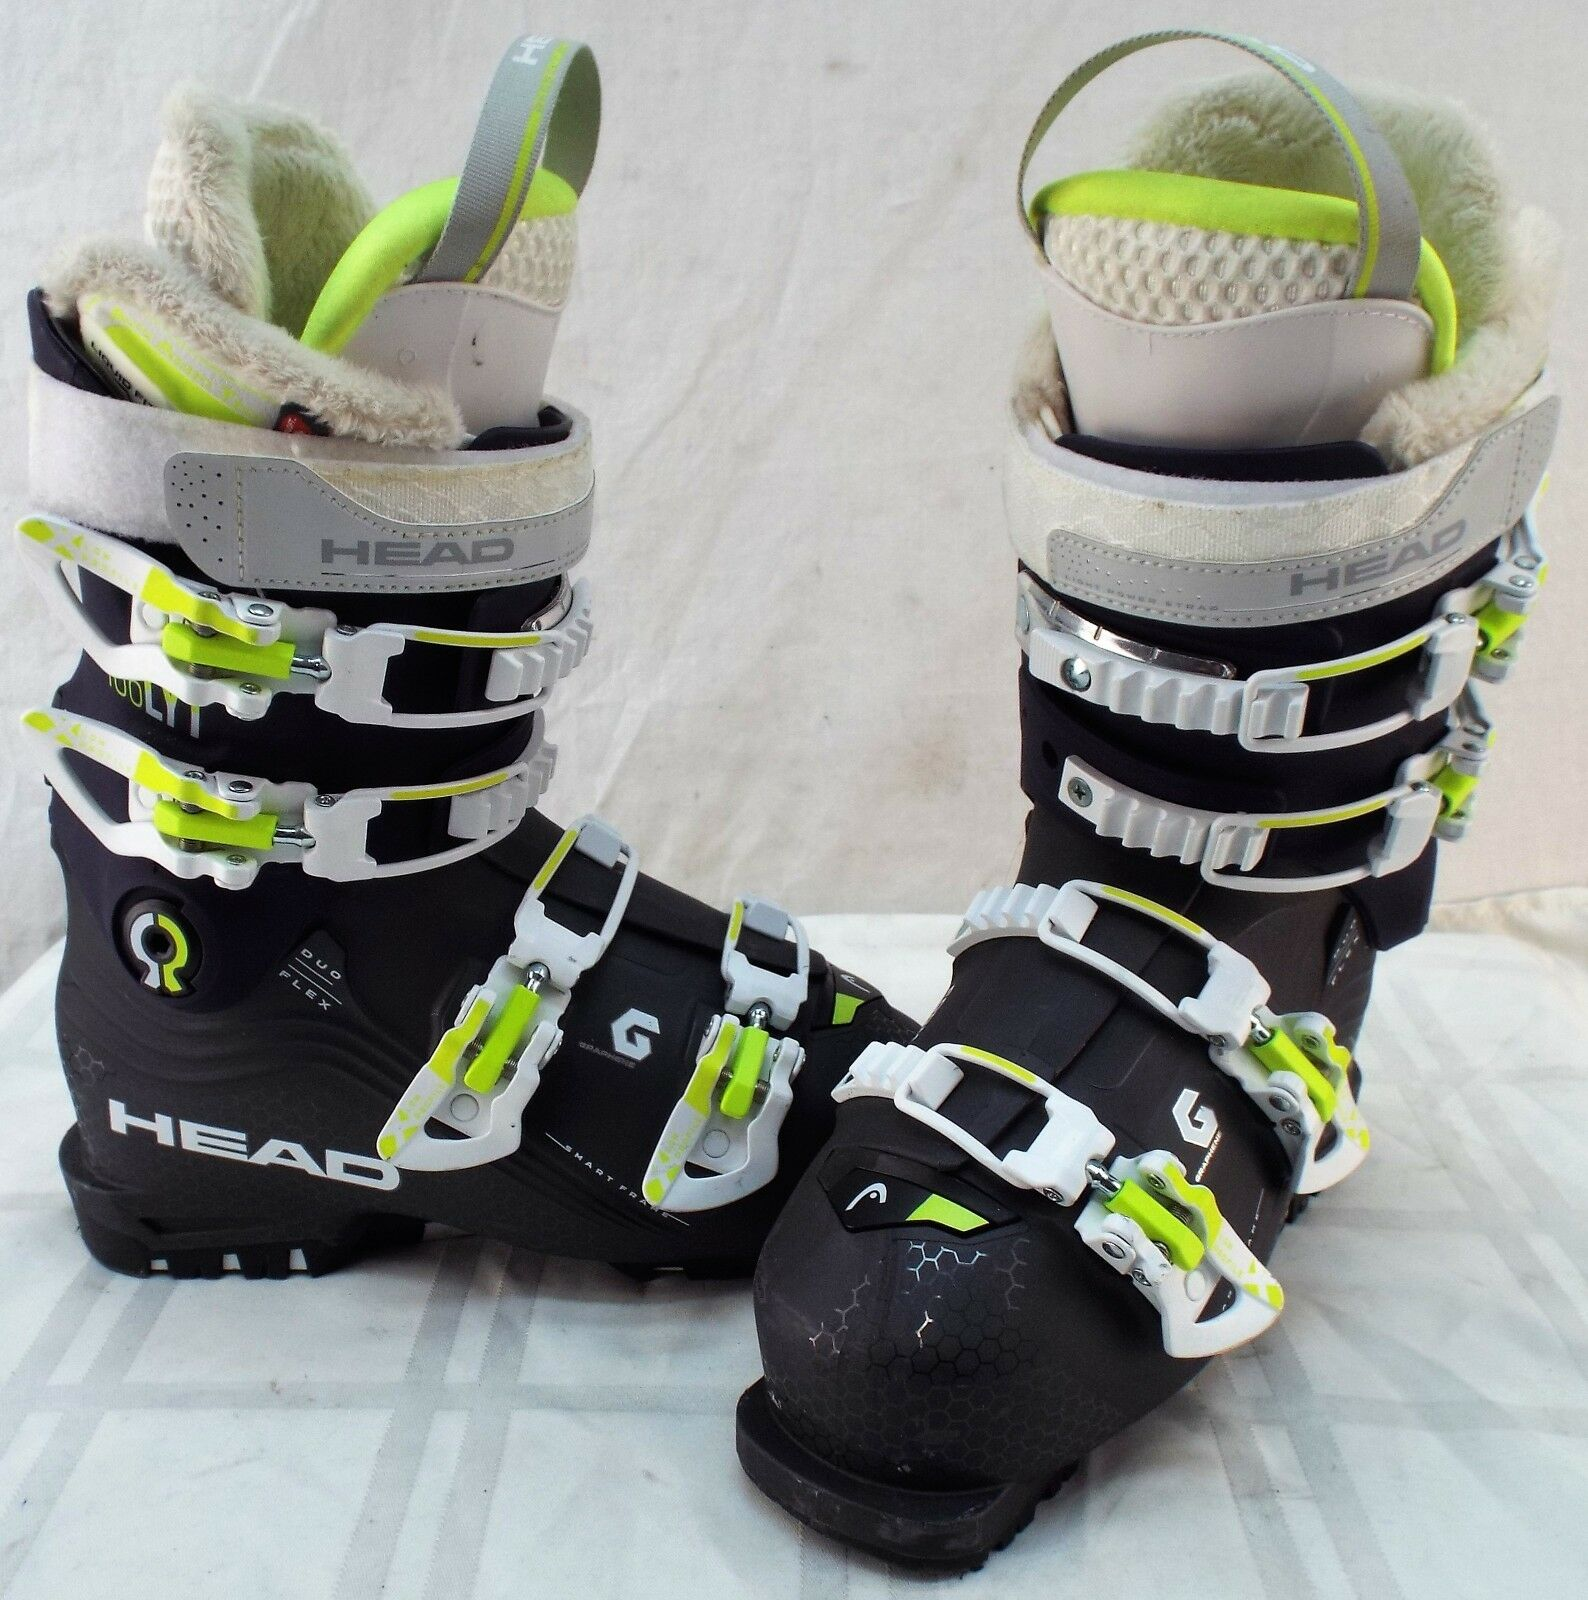 Head Nexo Lyt 100  Used Women's Ski Boots Size 23.5  the newest